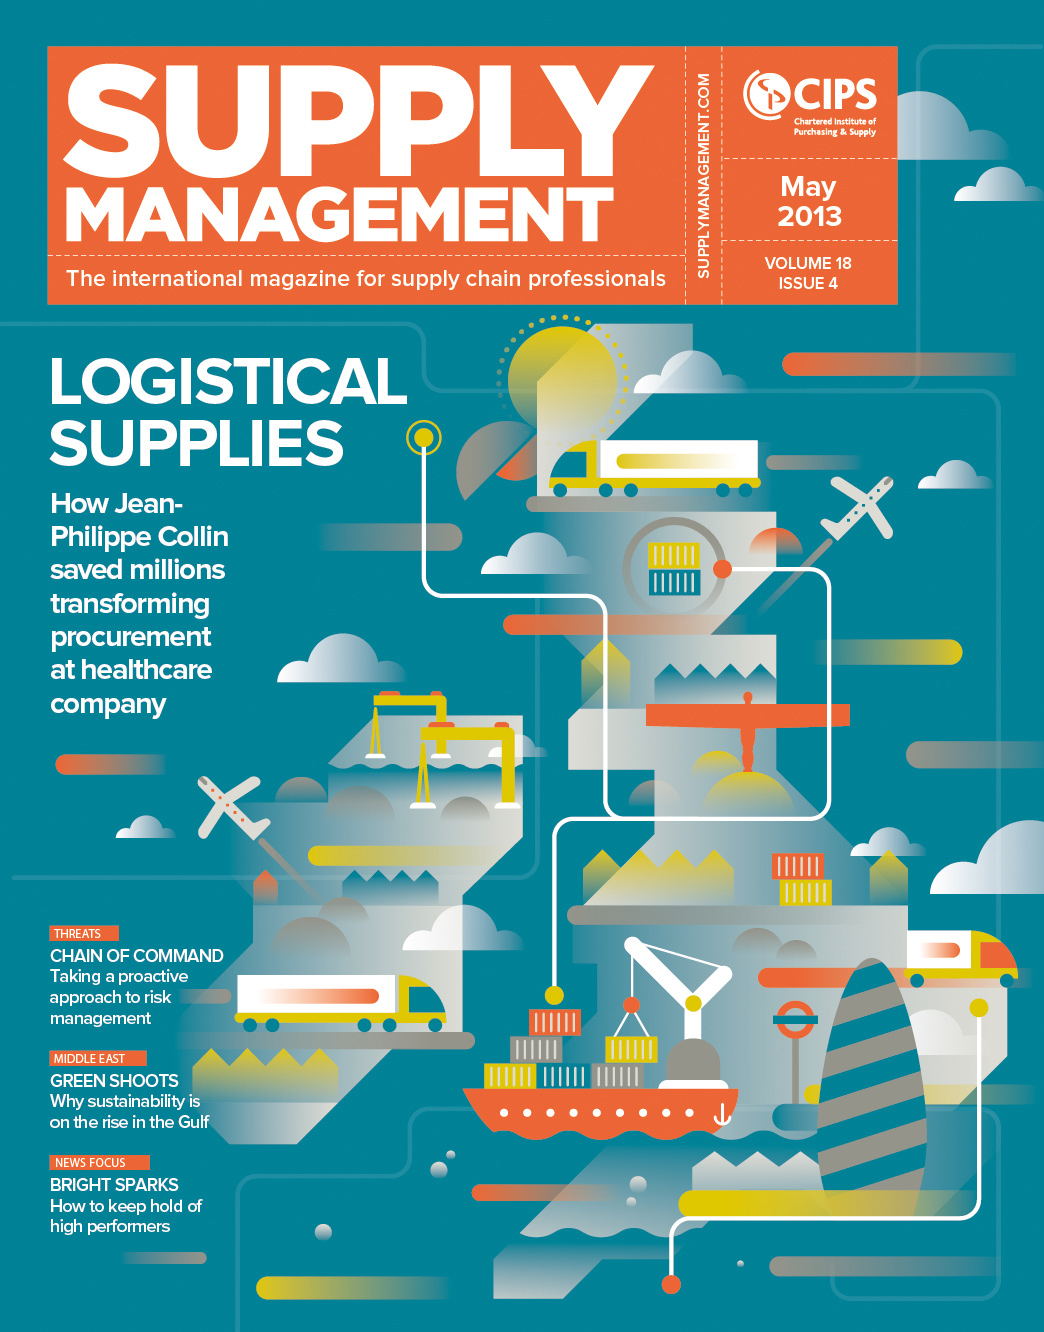 Supplymanagement